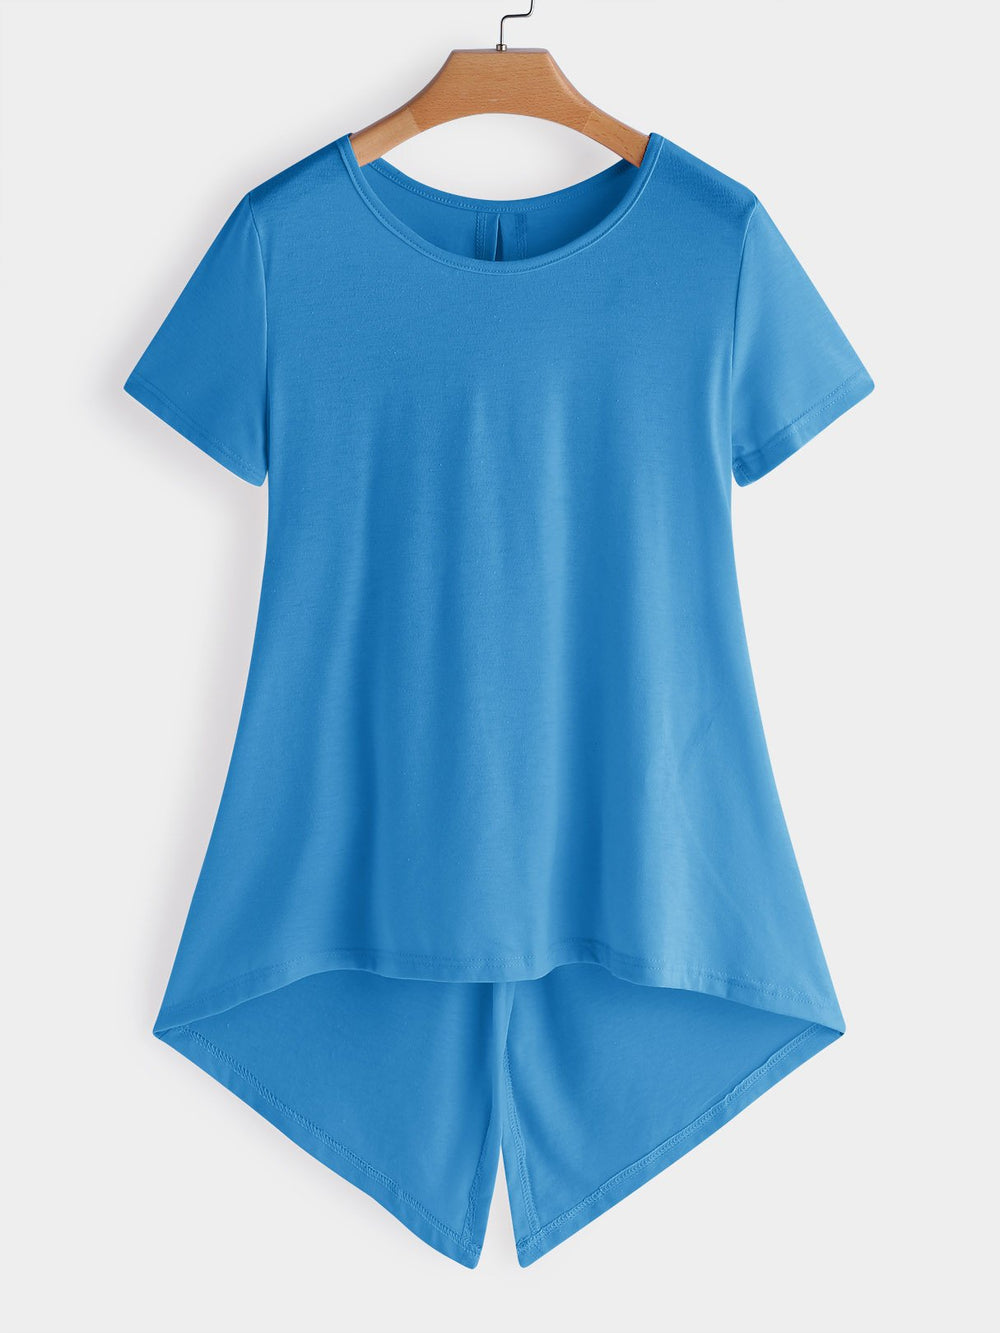 Womens Short Sleeve Top